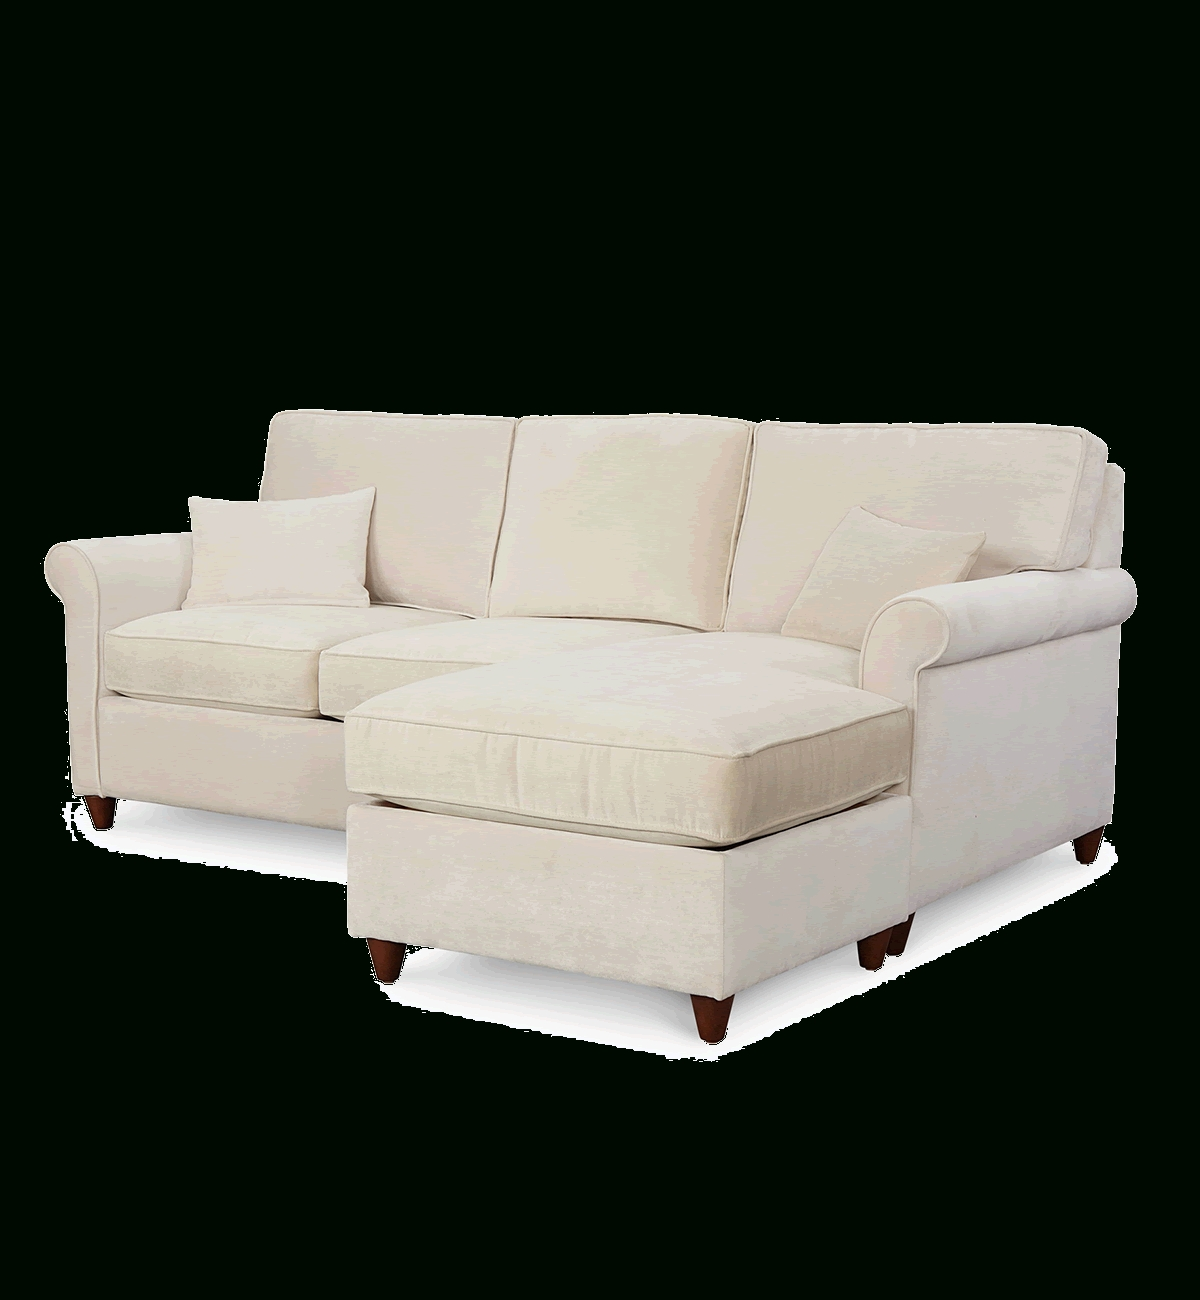 Latest Macys Sectional Sofas Within Sectional Sofas Couches And Sofas – Macy's (View 11 of 15)